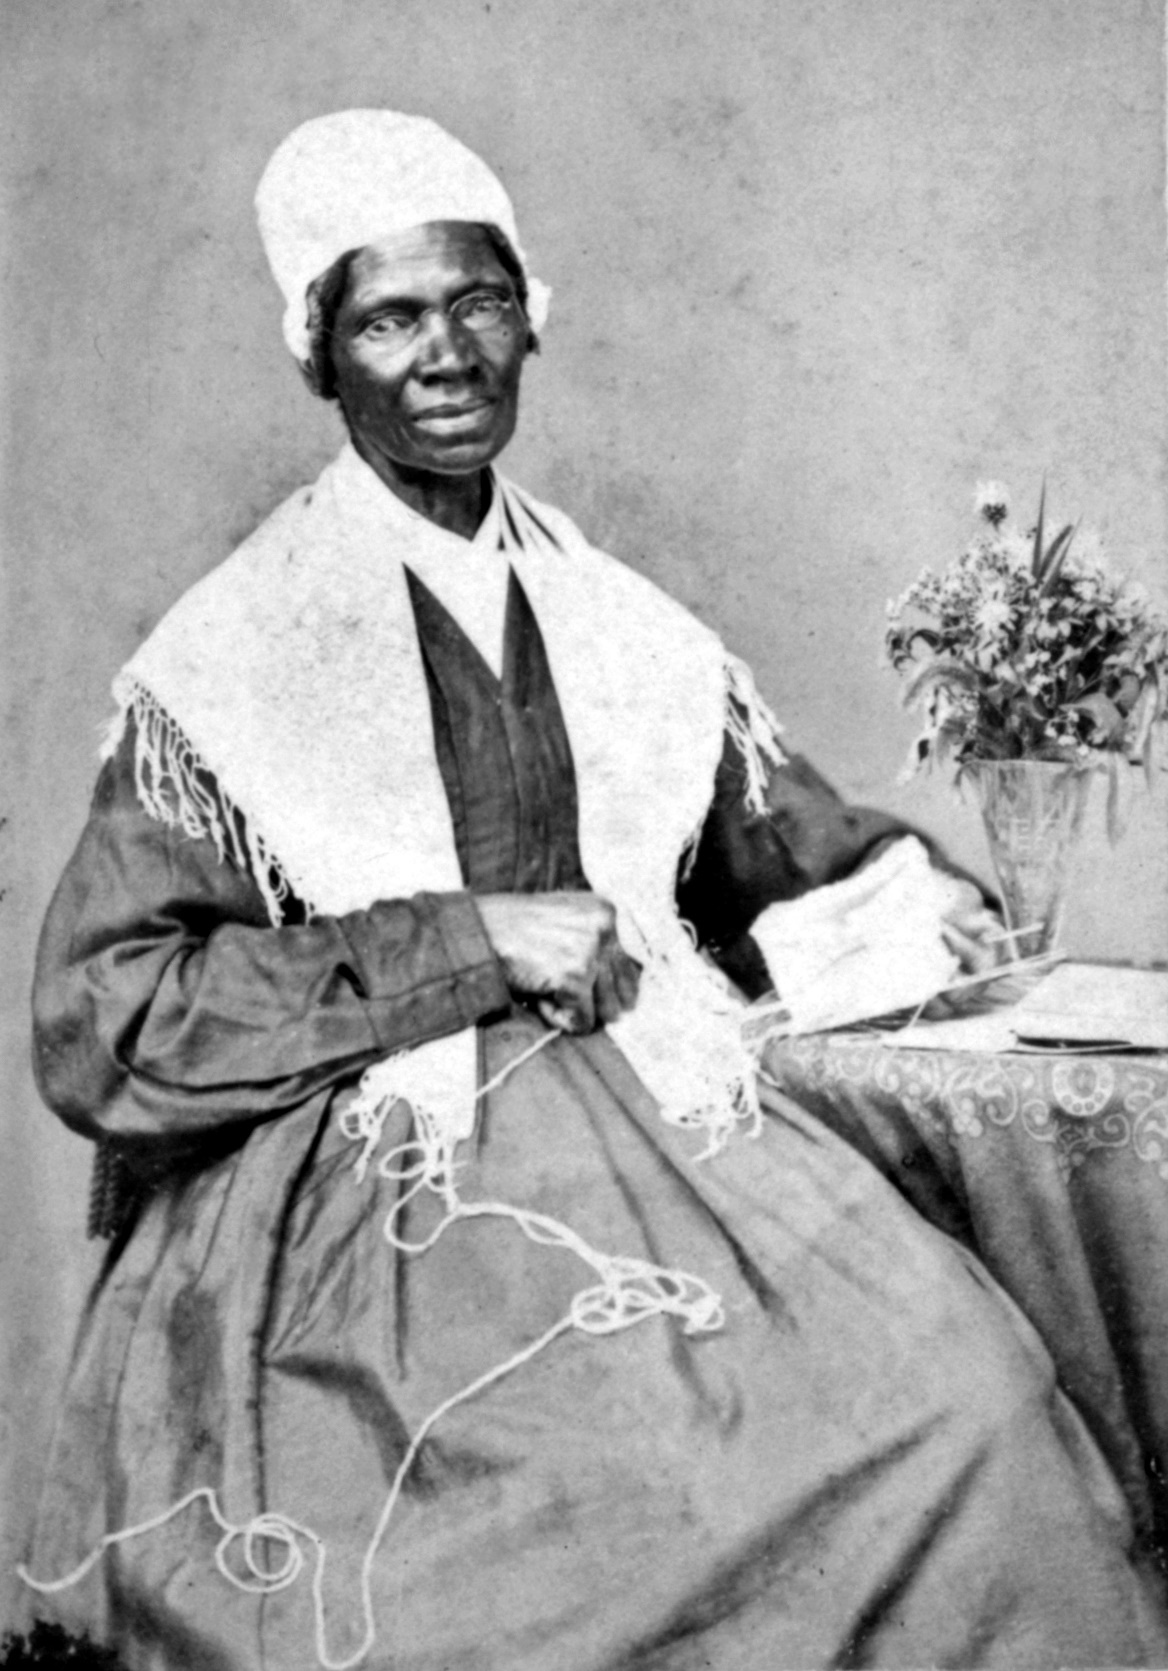 Sojourner Truth - Women's History Month 2018 - Women Empowerment - Empowering women in history - feminists - women's rights activists Women's History Month Celebrating Women's History Month Sojourner Truth 01